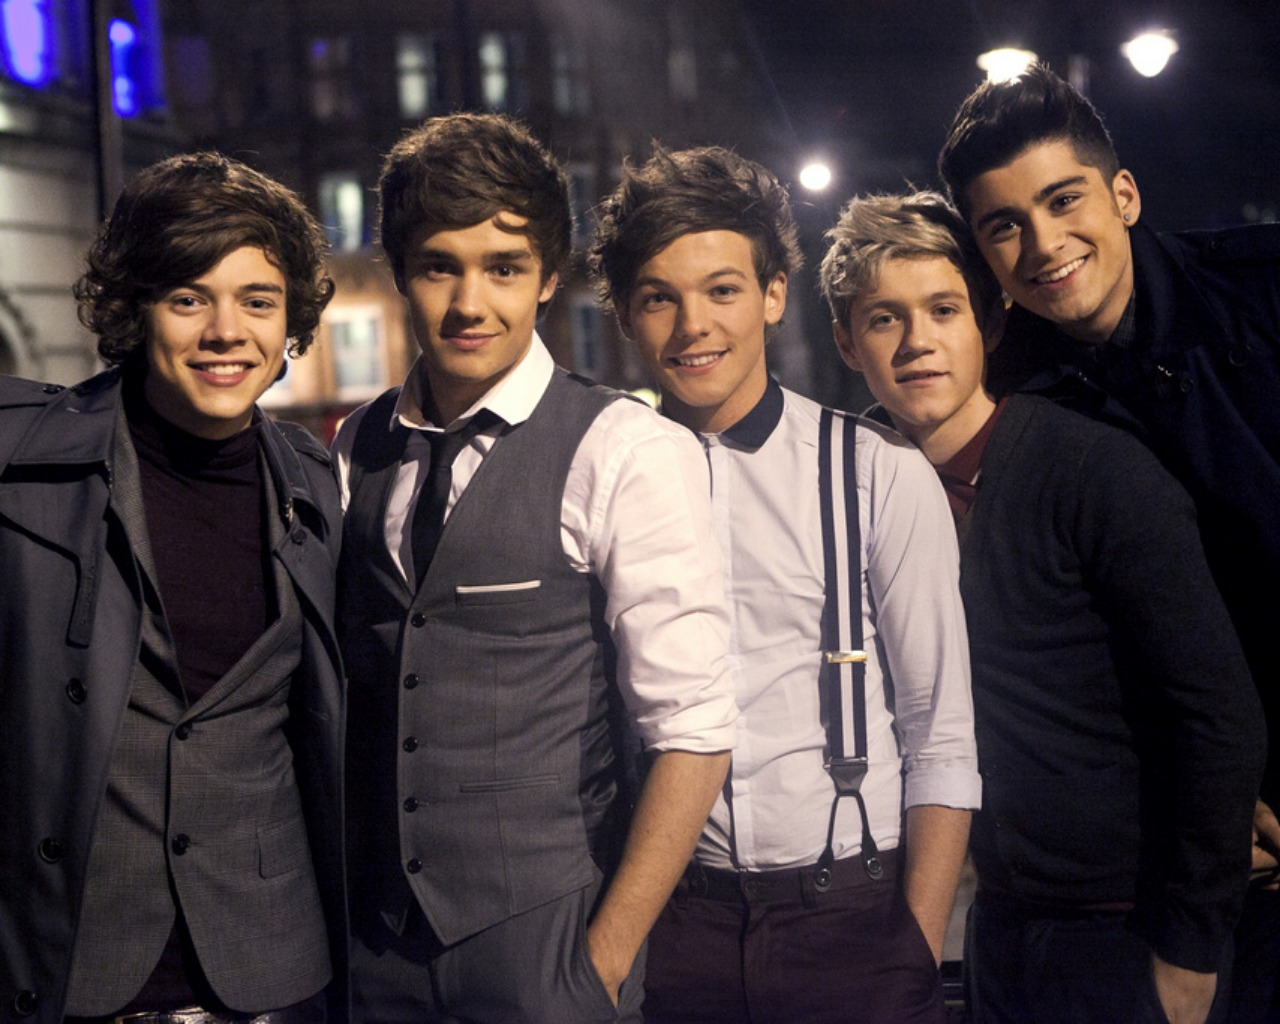 How wealthy are the members of One Direction? | London